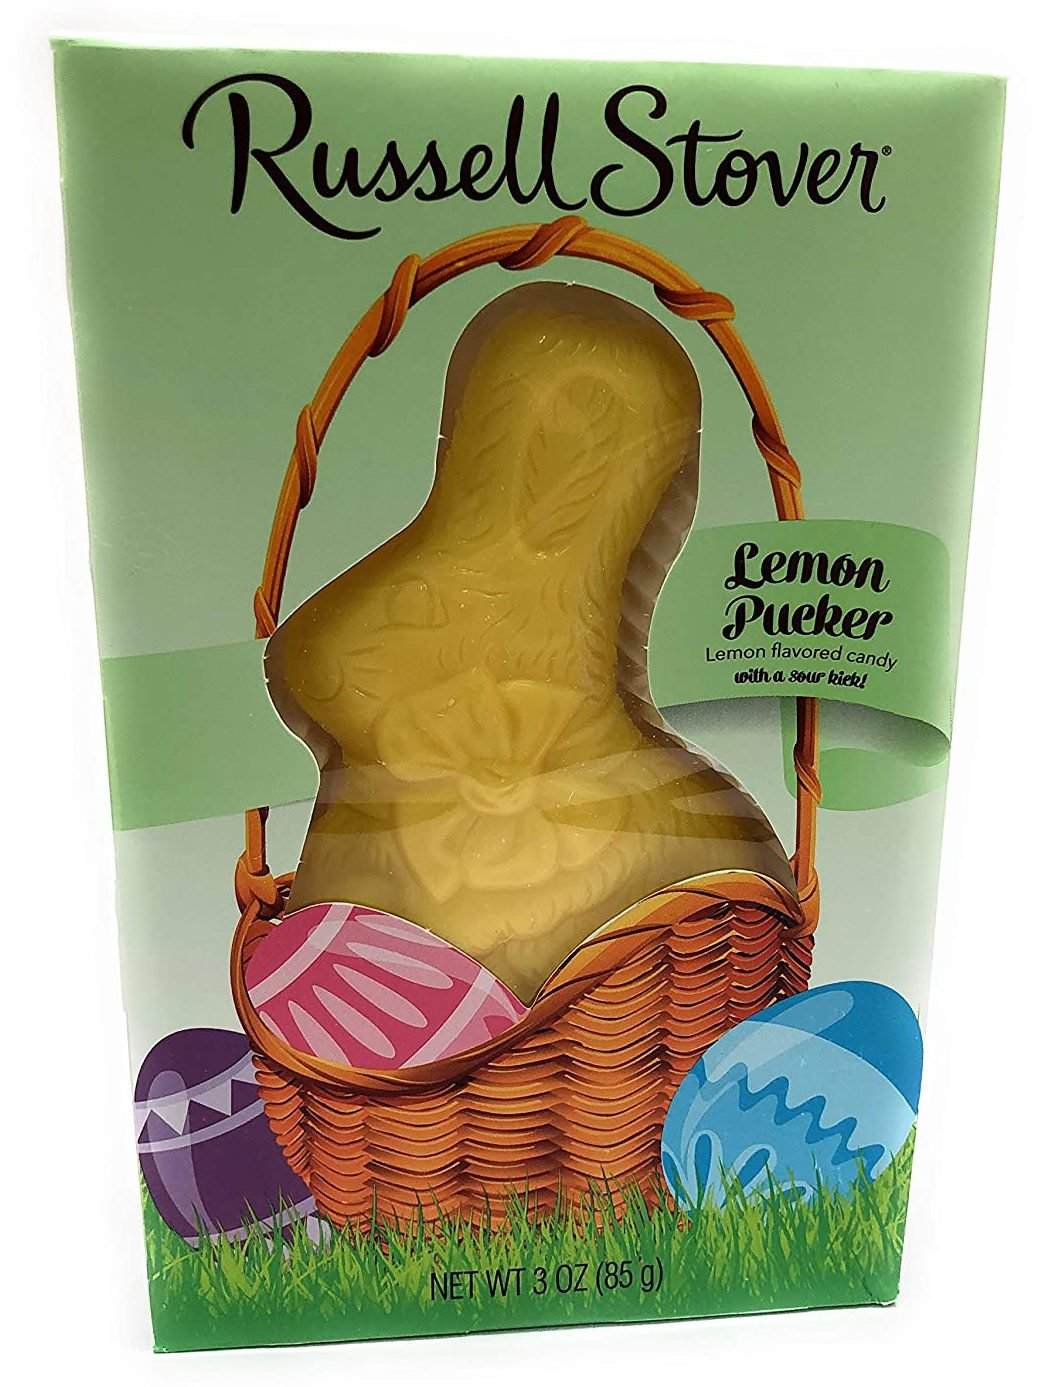 Russell Stover Lemon Pucker Bunny